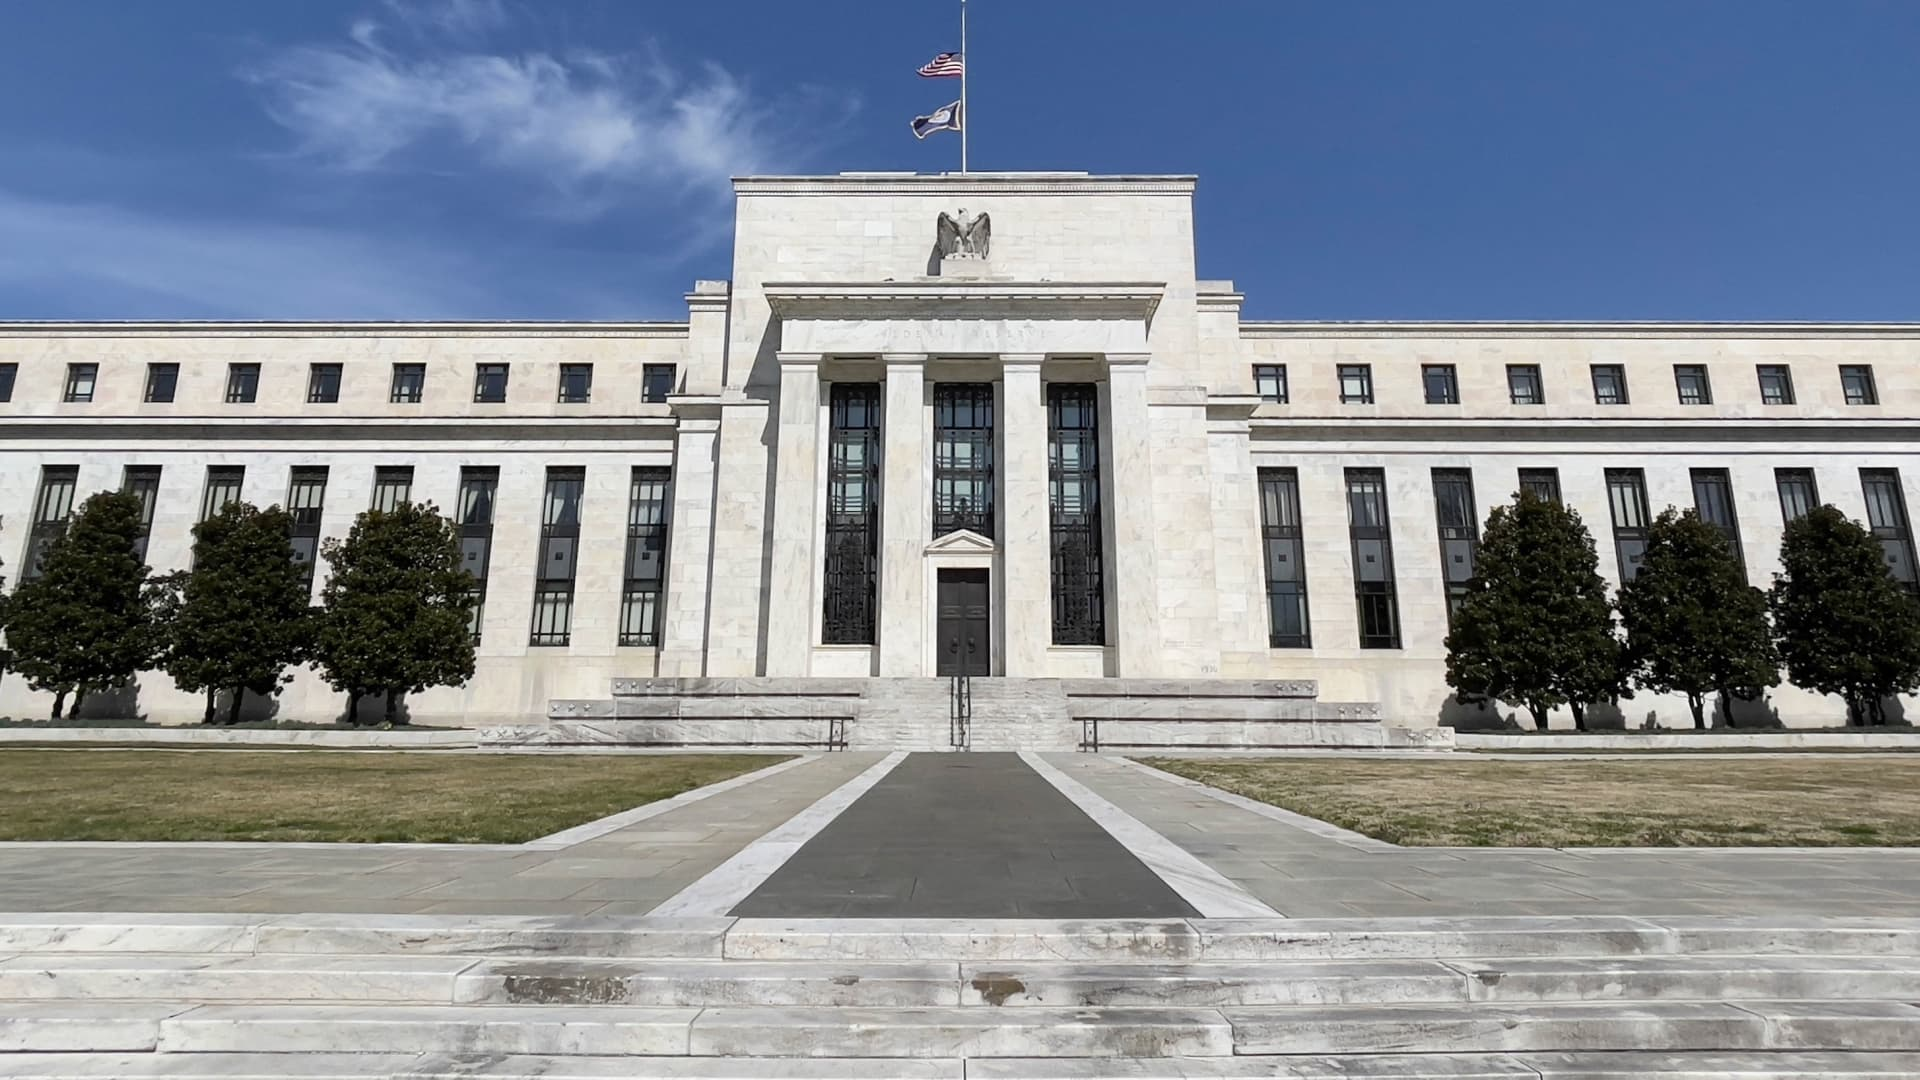 The Federal Reserve building is seen on March 19, 2021 in Washington, DC.